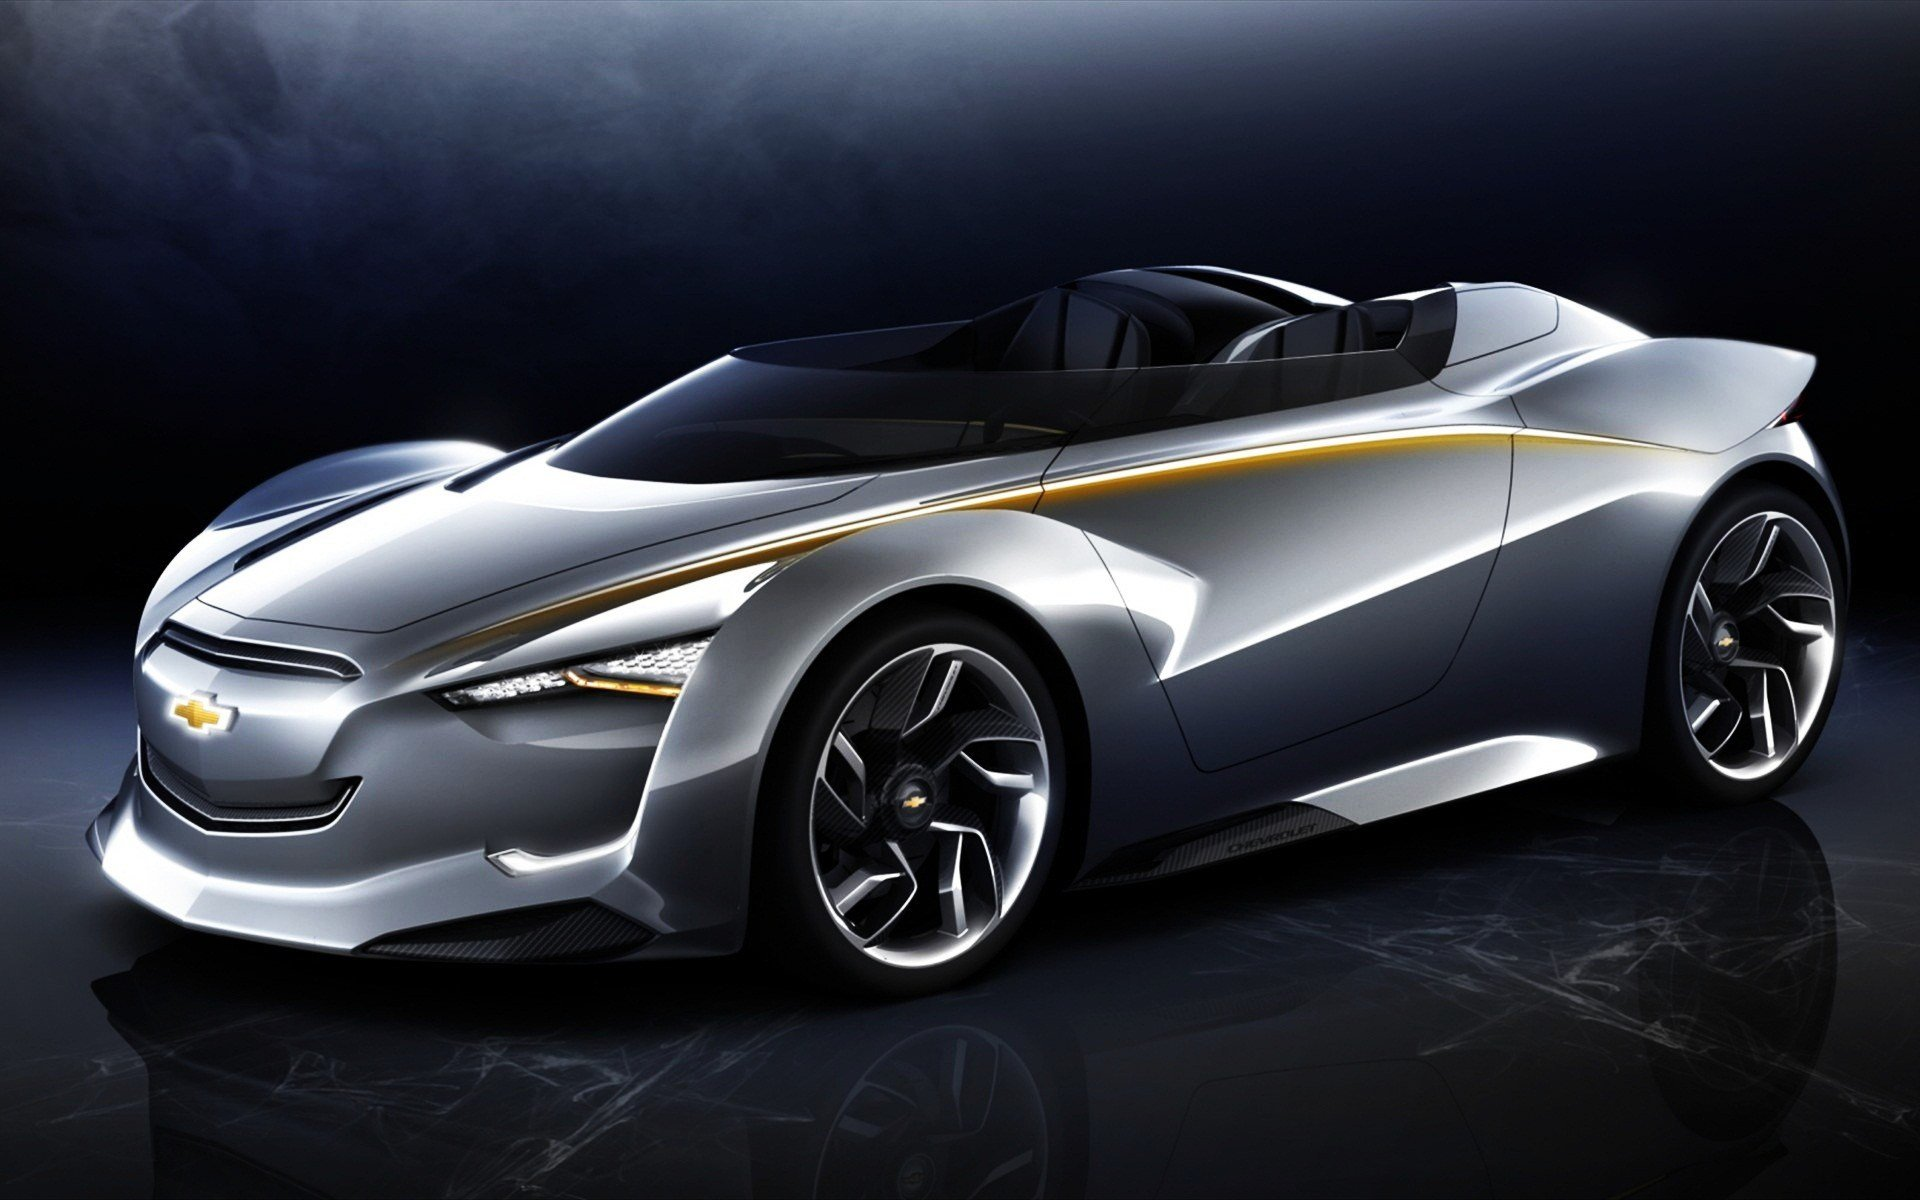 New Chevrolet Mi Ray Roadster Concept Car Wallpapers Hd On This Month